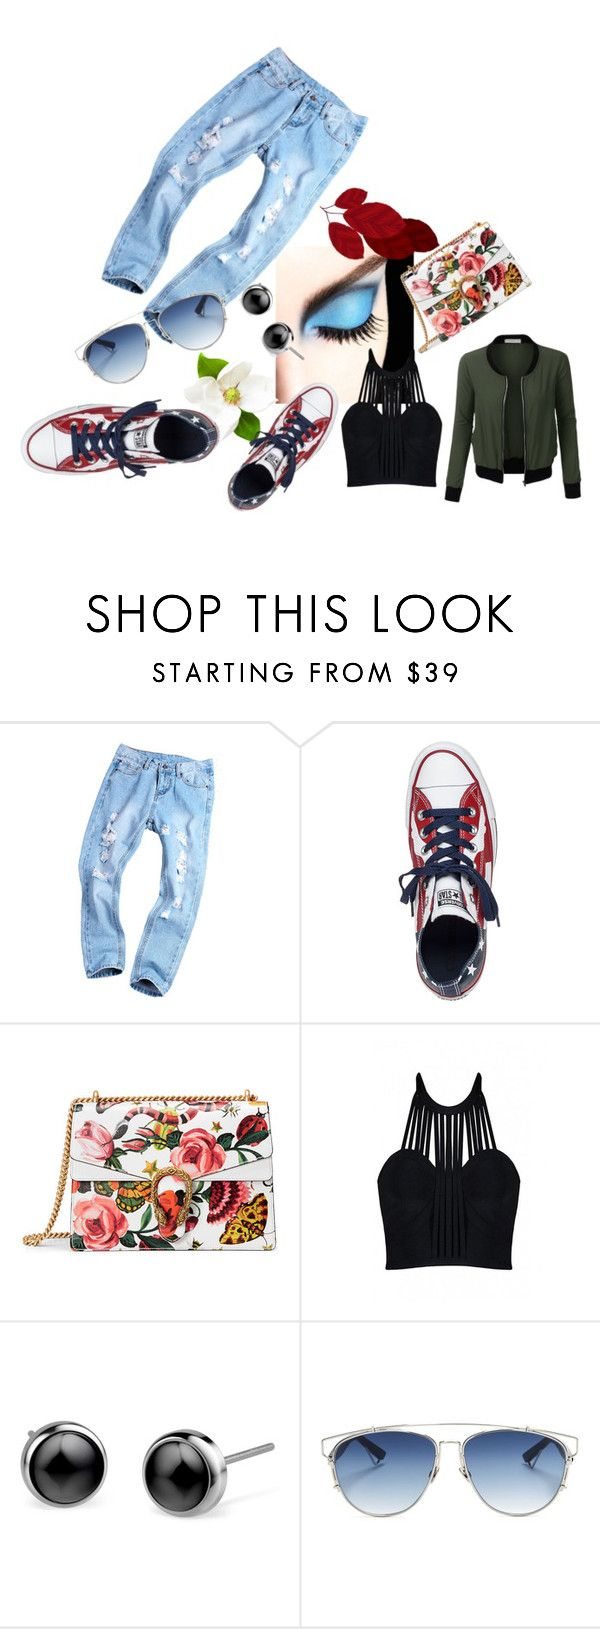 """Bez tytułu #50"" by marta81-1 ❤ liked on Polyvore featuring Converse, Gucci, Posh Girl, Christian Dior and LE3NO"